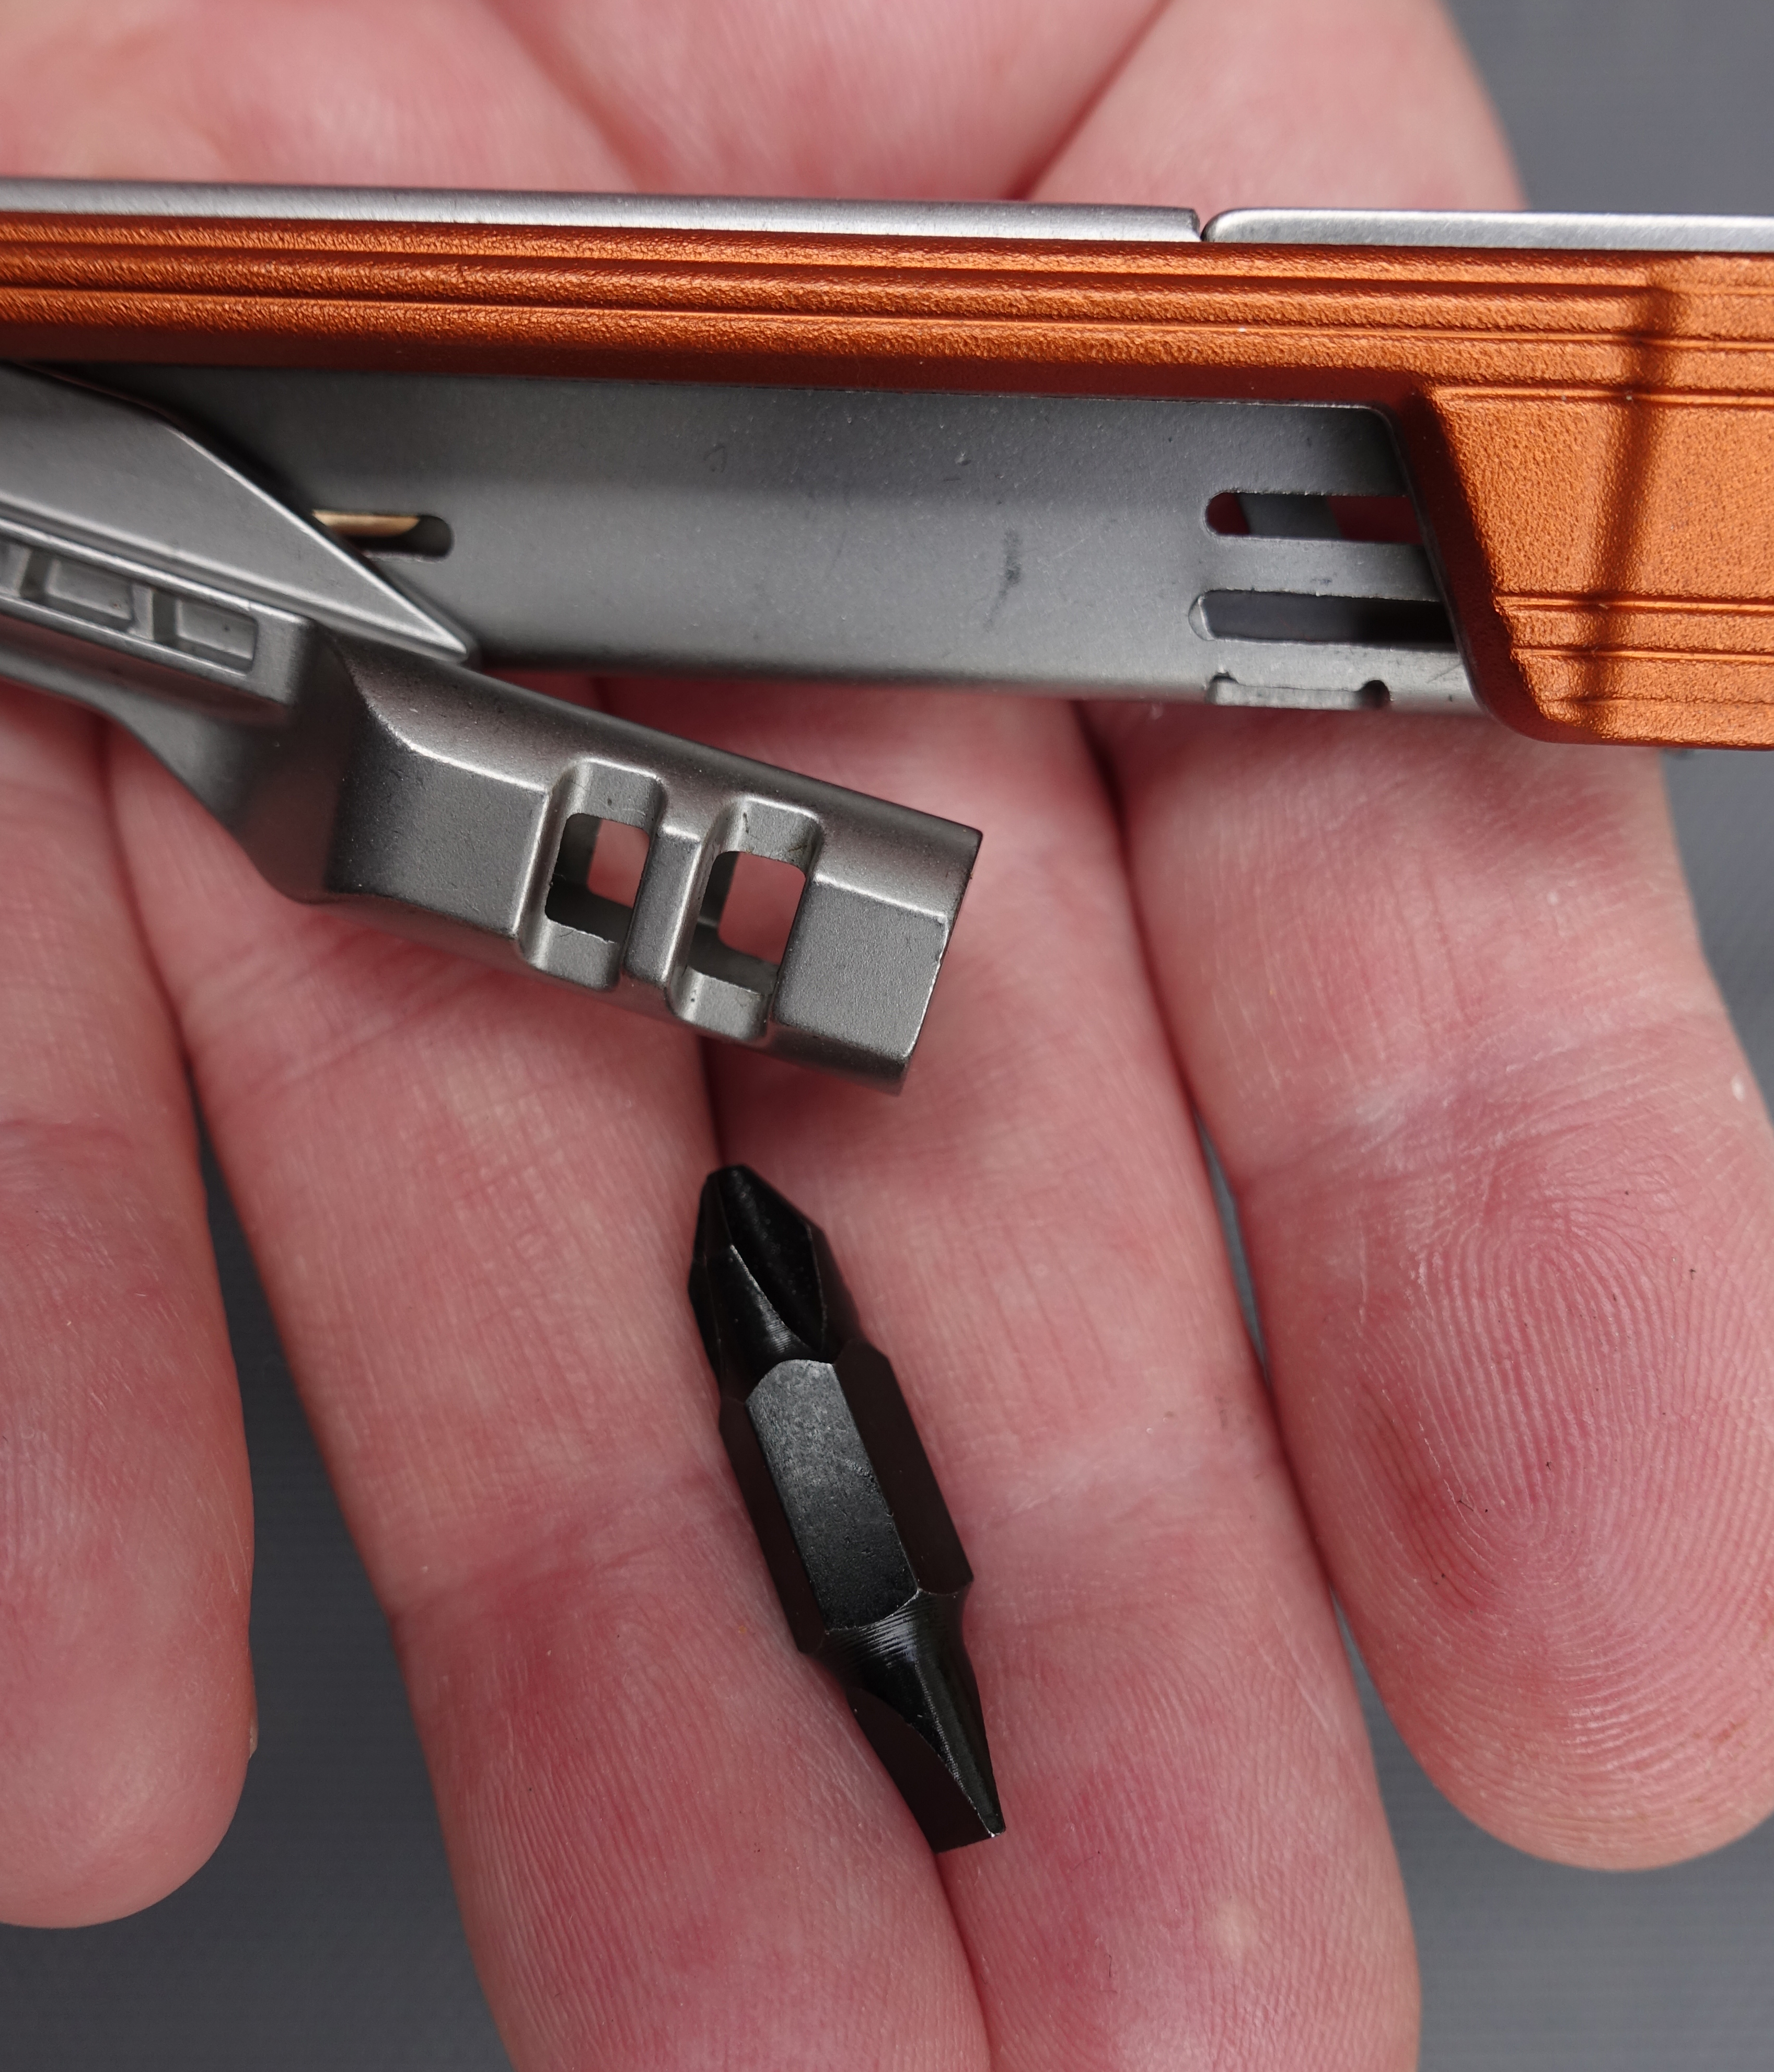 Short removable bit comes supplied with the Slim Drive